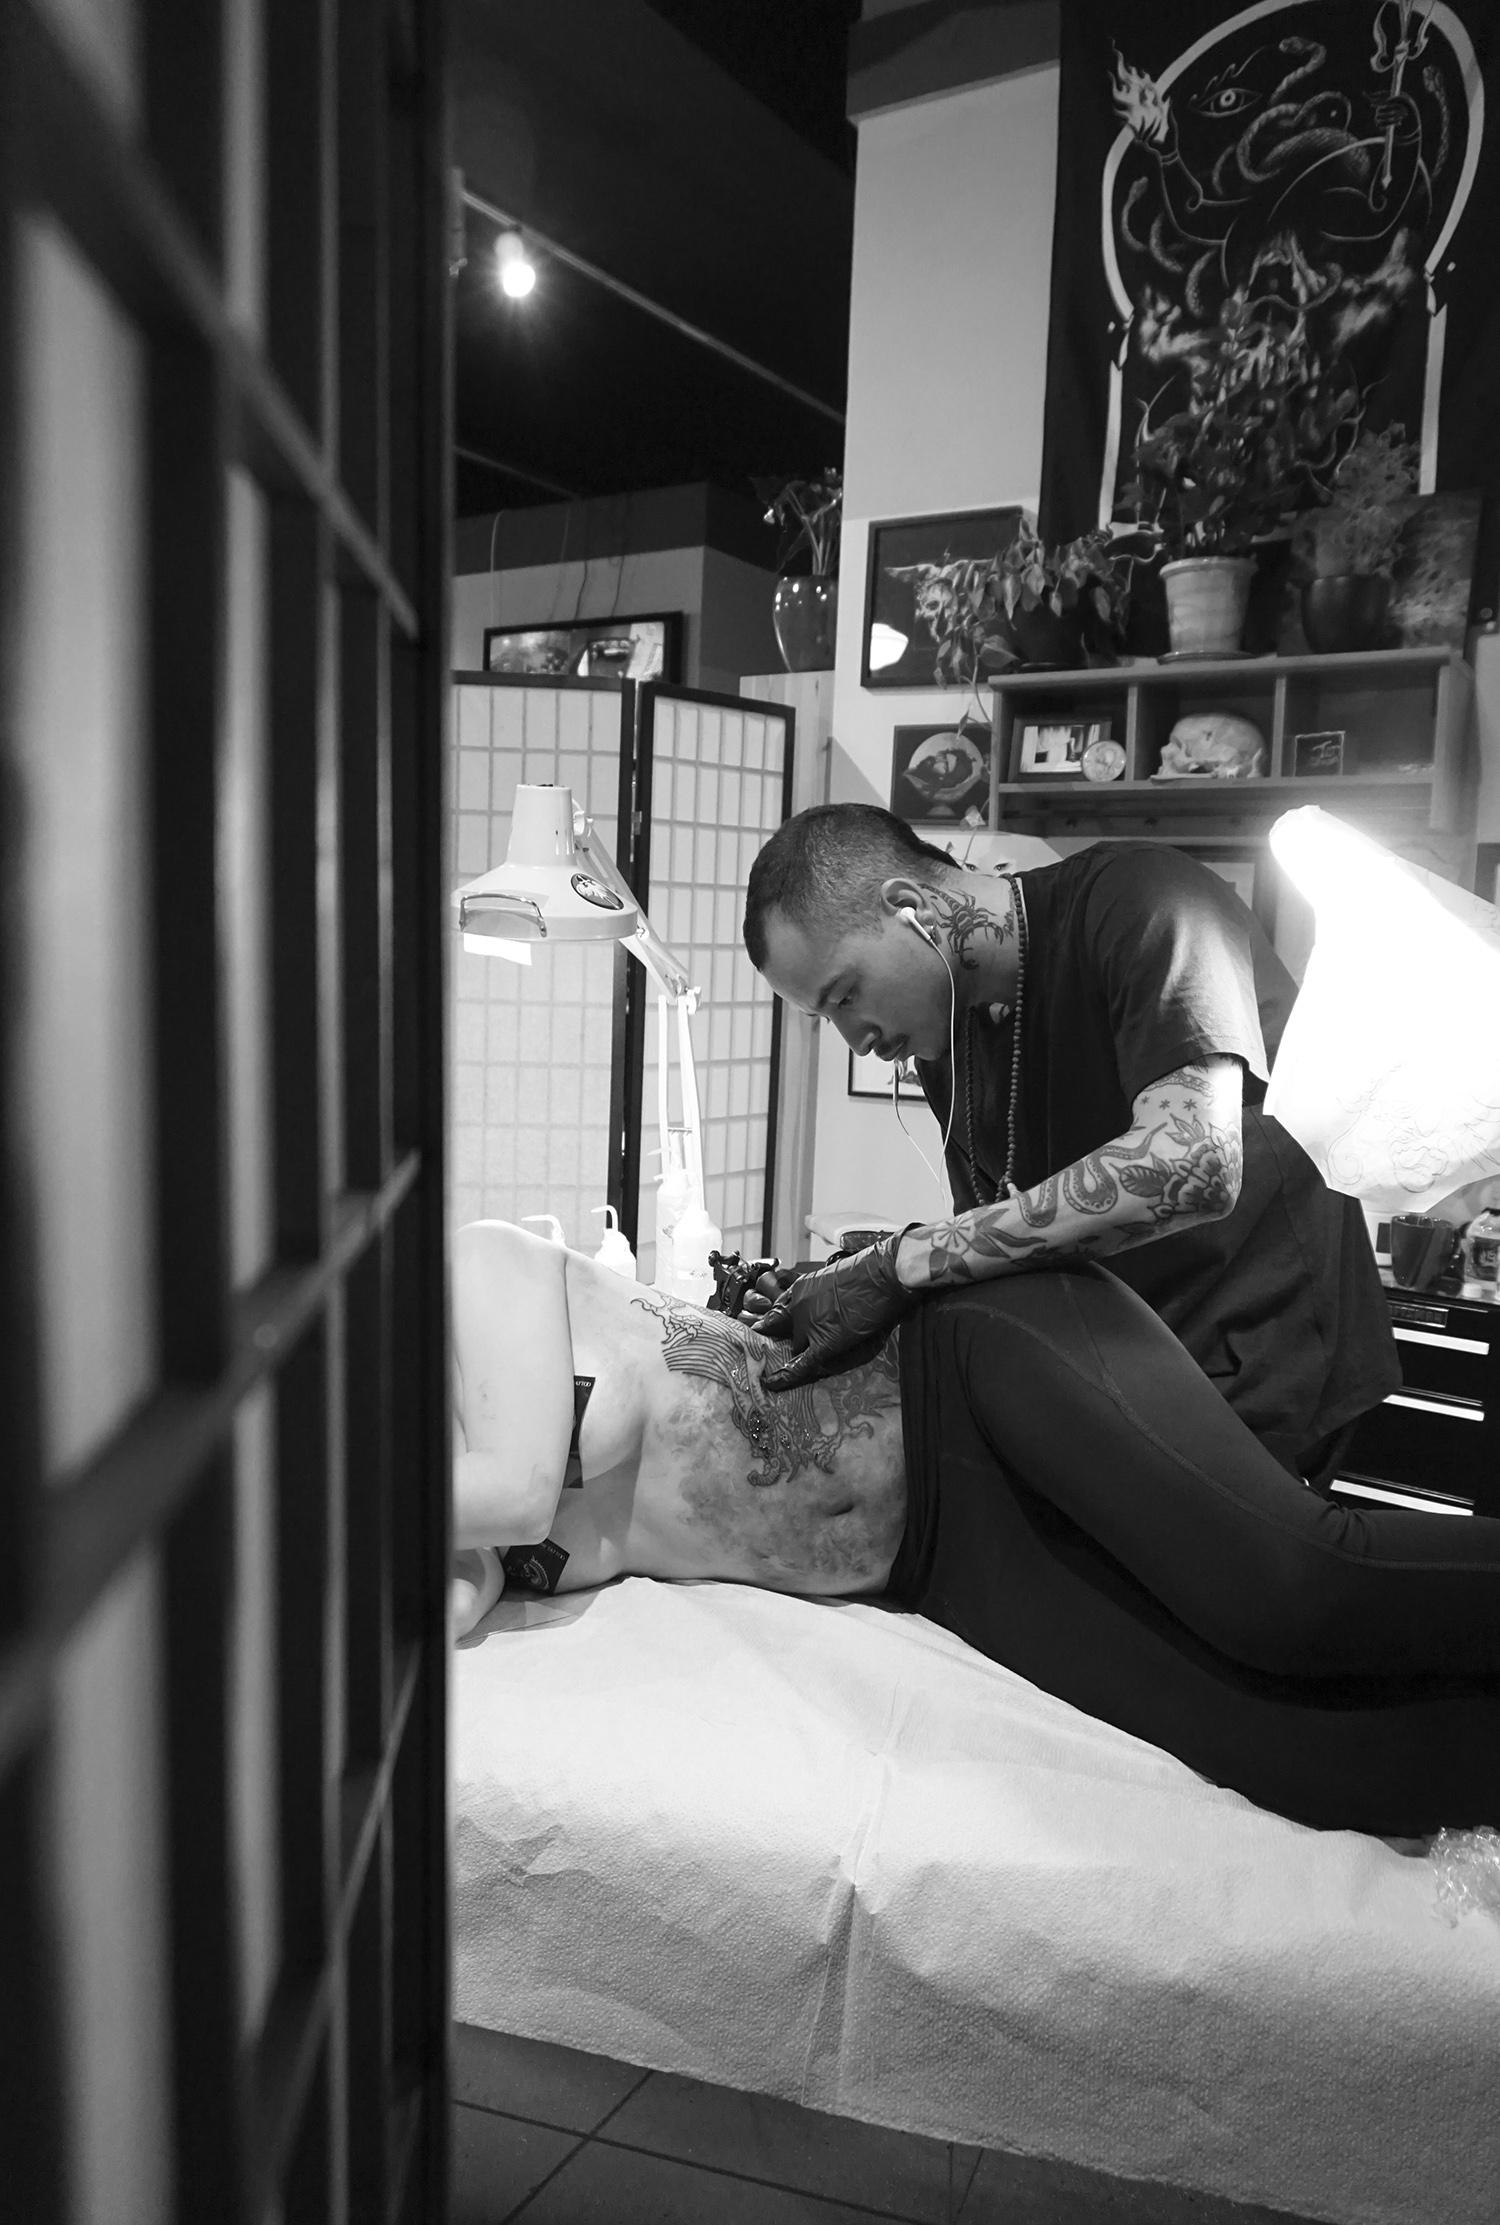 tattooing in oakland studio, scene360 coverage